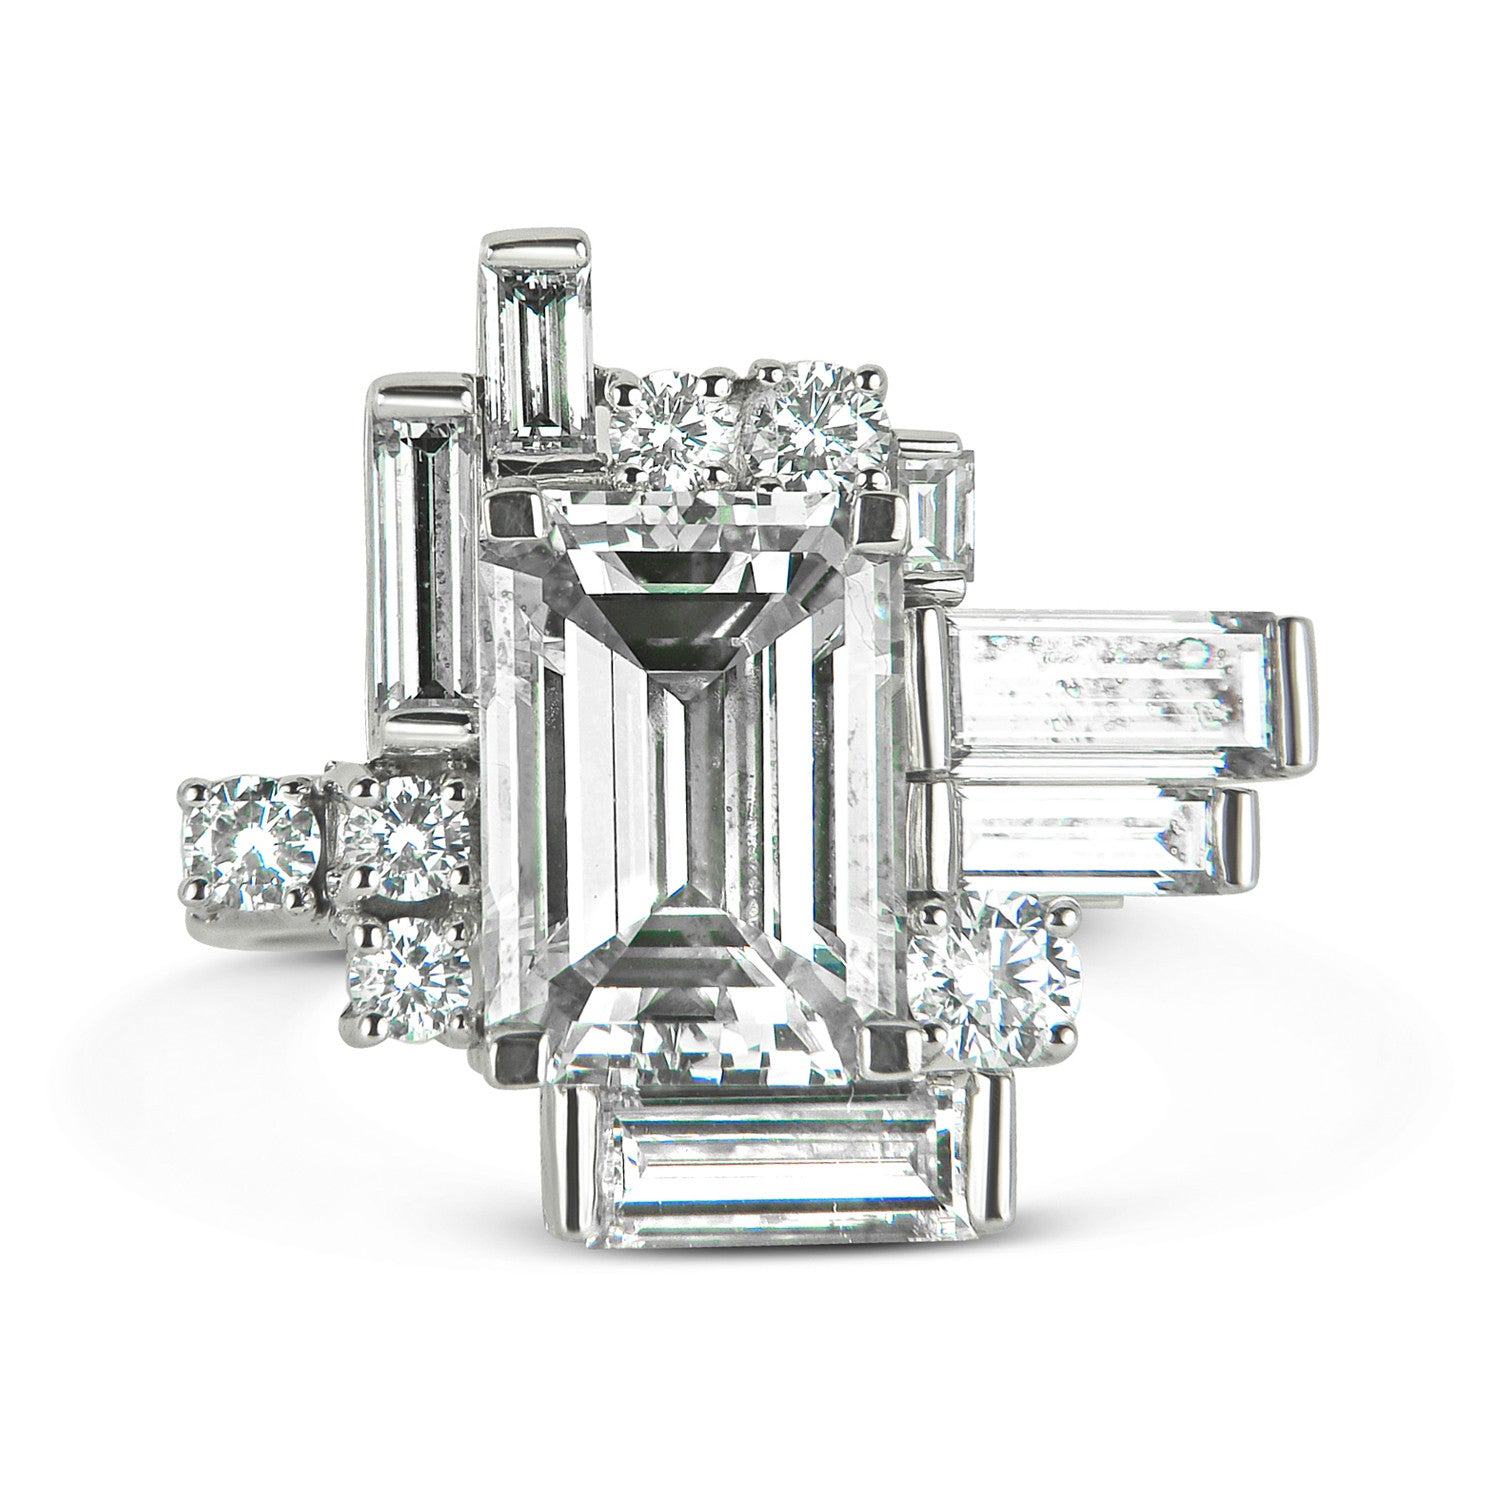 Bespoke Corene Art Deco cocktail ring - 18ct recycled white gold and recycled baguette diamonds